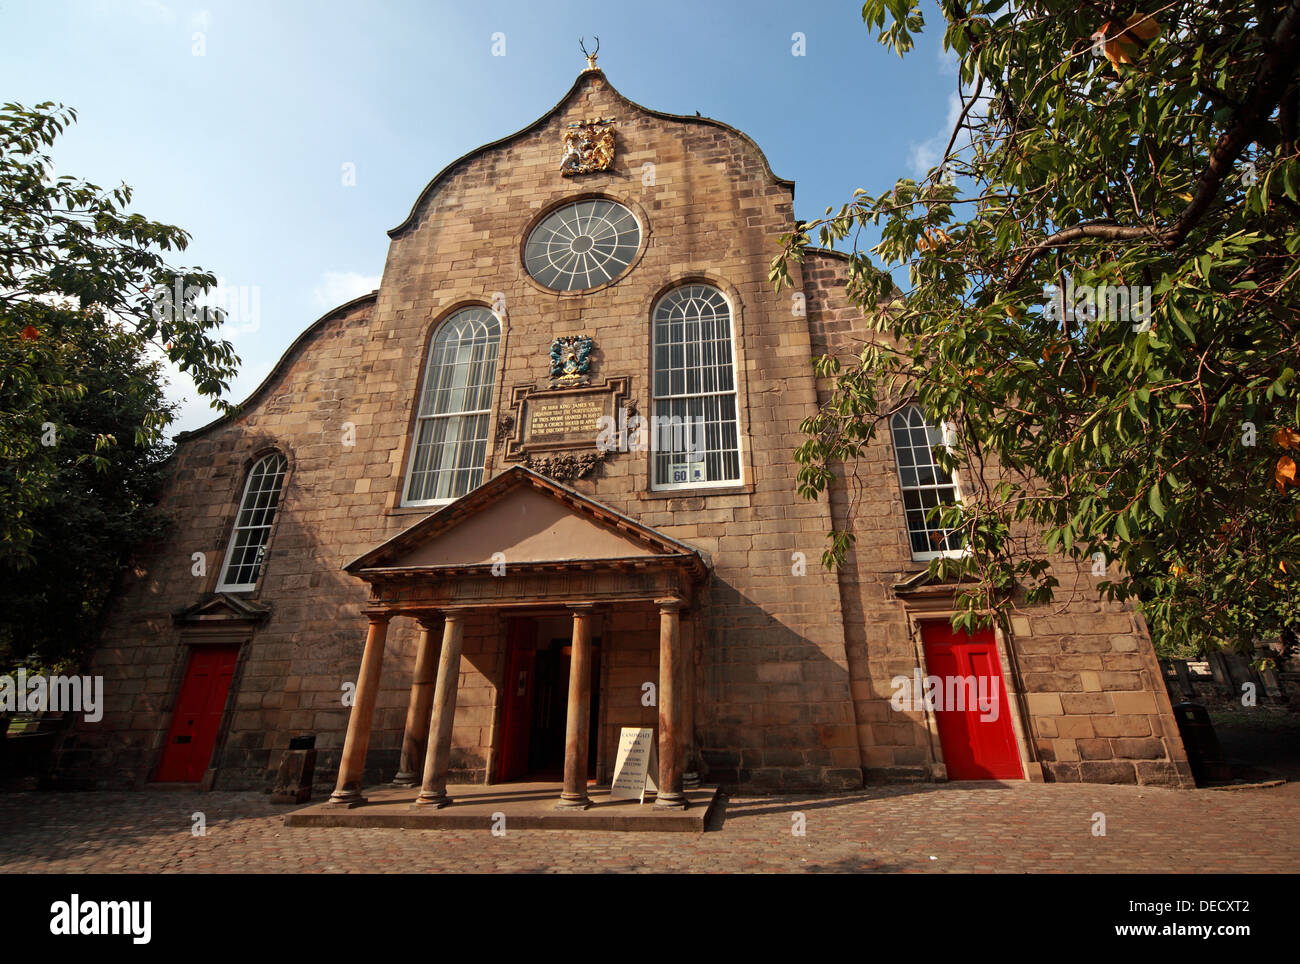 EH8,8BN,EH88BN,exterior,outside,historic,tourist,travel,building,architecture,kirkyard,churchyard,yard,Canon,gate,of,old,town,oldtown,parish,castle,cots,Scottish,scotch,burgh,city,Dutch-style,end,gable,worship,services,Sunday,anglican,religion,religion,Christianity,royal,gotonysmith,Palace,of,Holyroodhouse,Holyrood,capital,Dutch,style,small,doric-columned,portico,over,the,entrance,doric,column,columned,Regiment,of,the,British,Army,chapel,Buy Pictures of,Buy Images Of